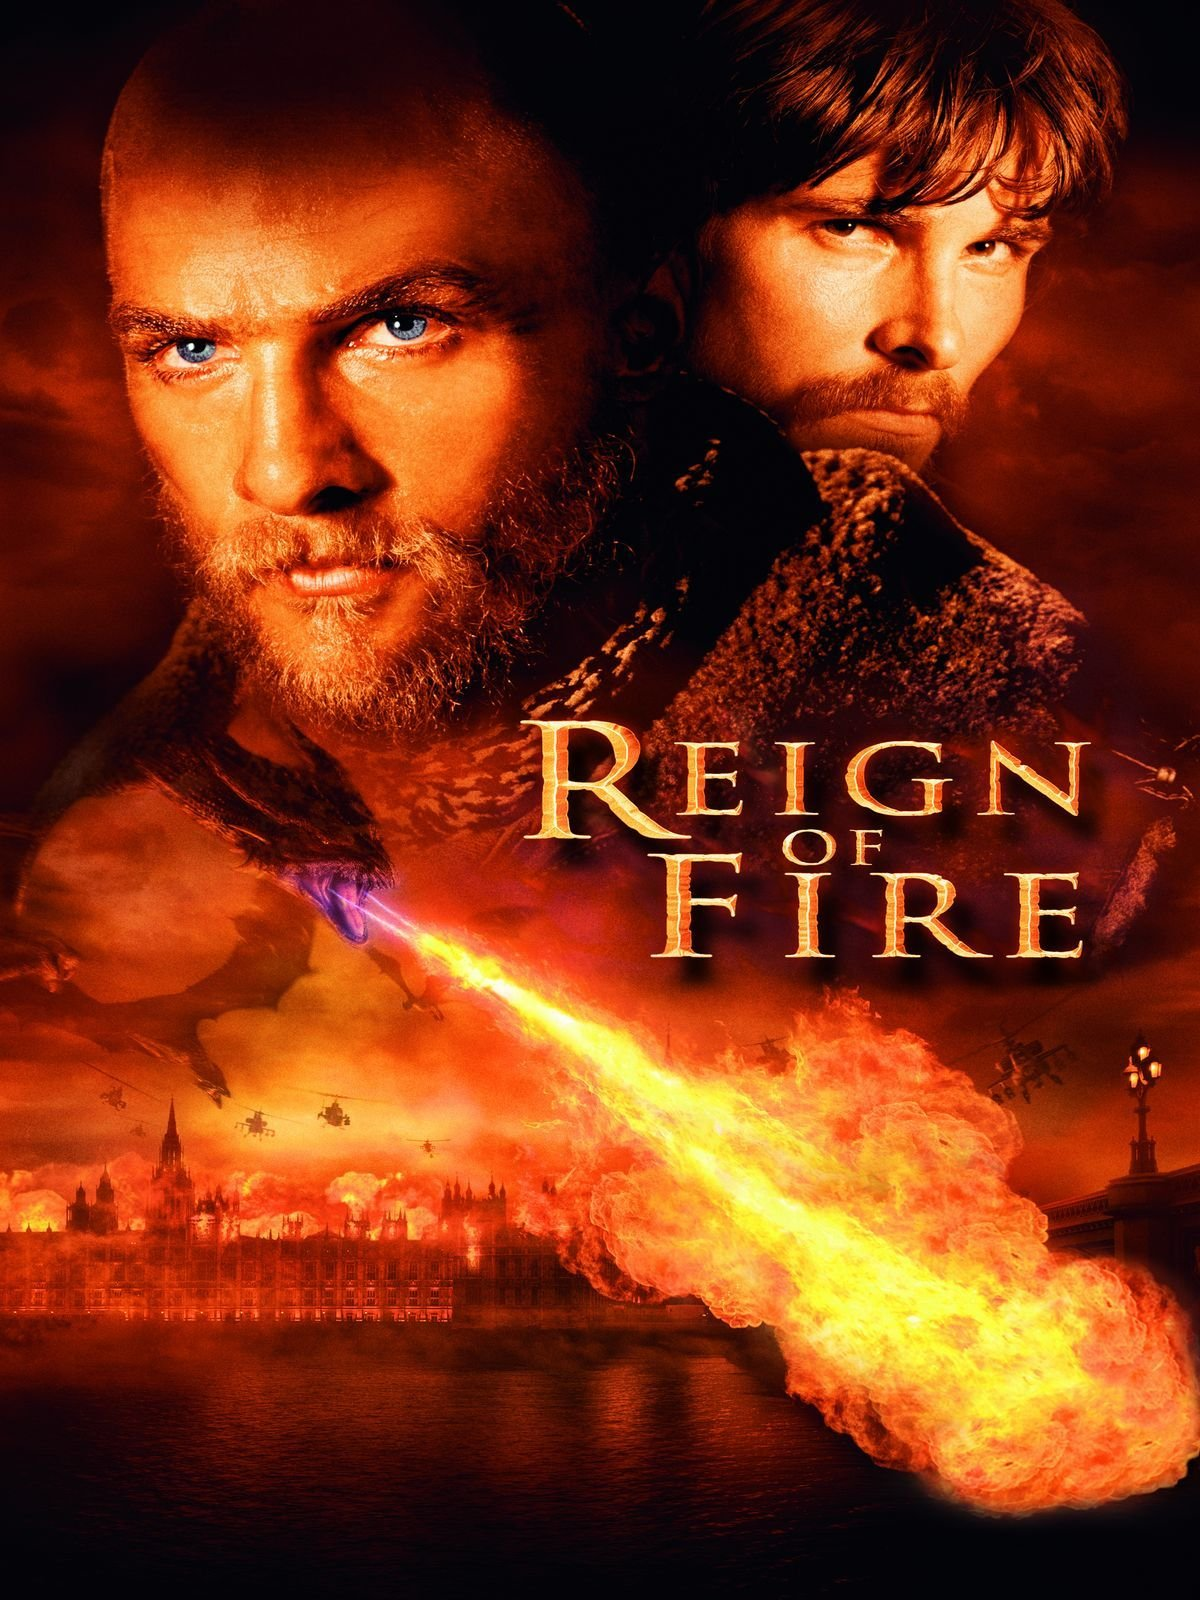 Download image 1700s woman portrait pc android iphone and ipad - Reign Of Fire